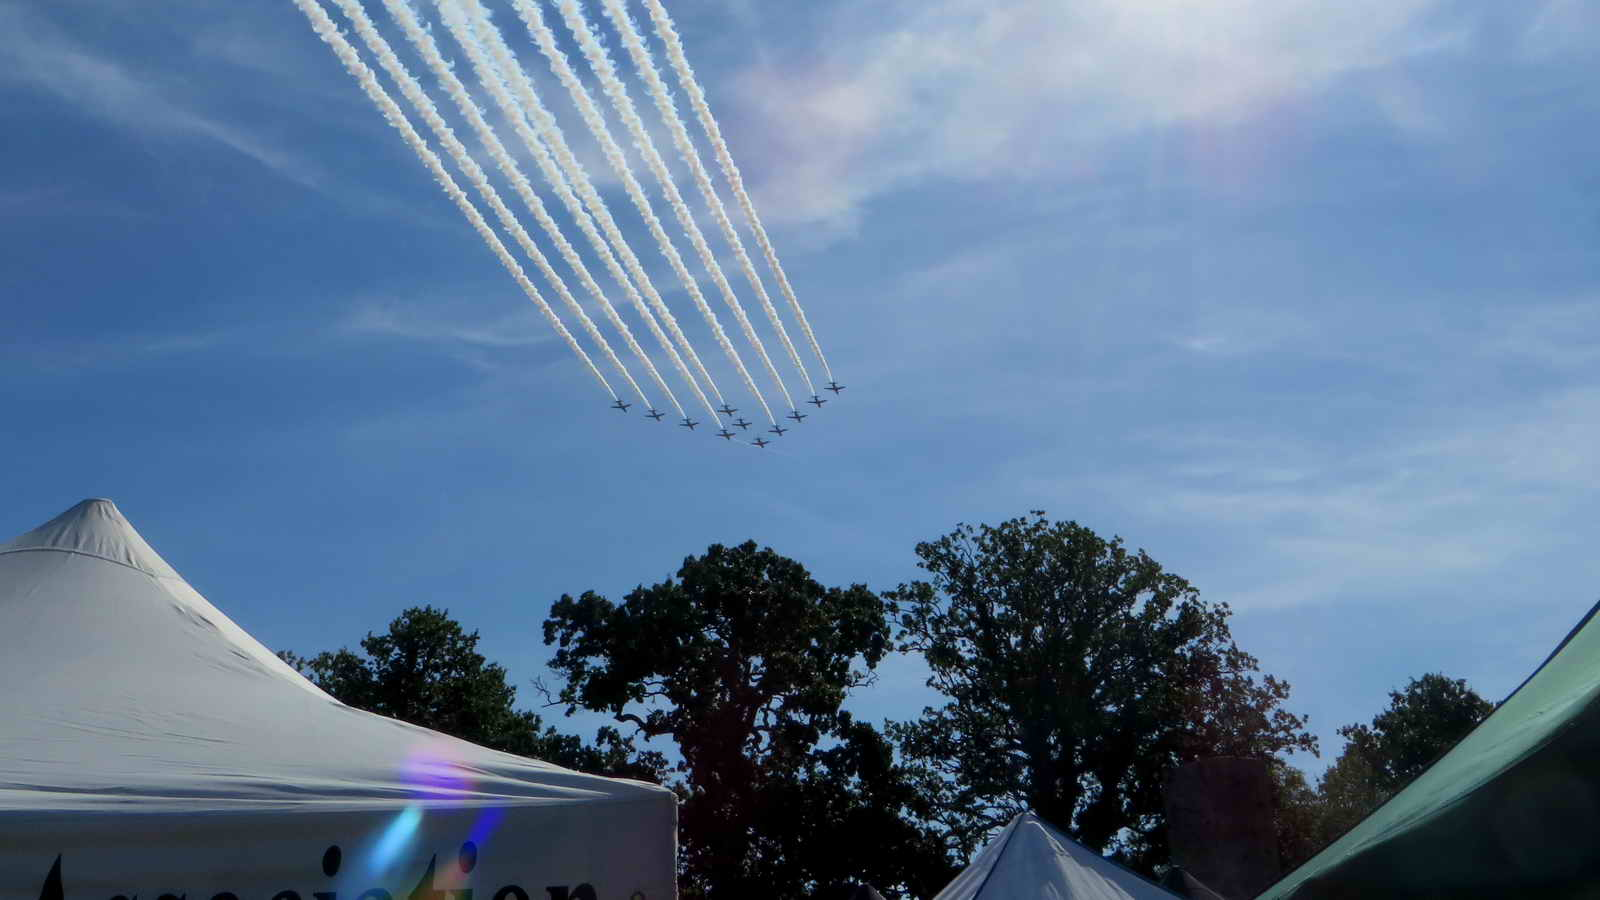 Red Arrows, departing over the DPA gazebo